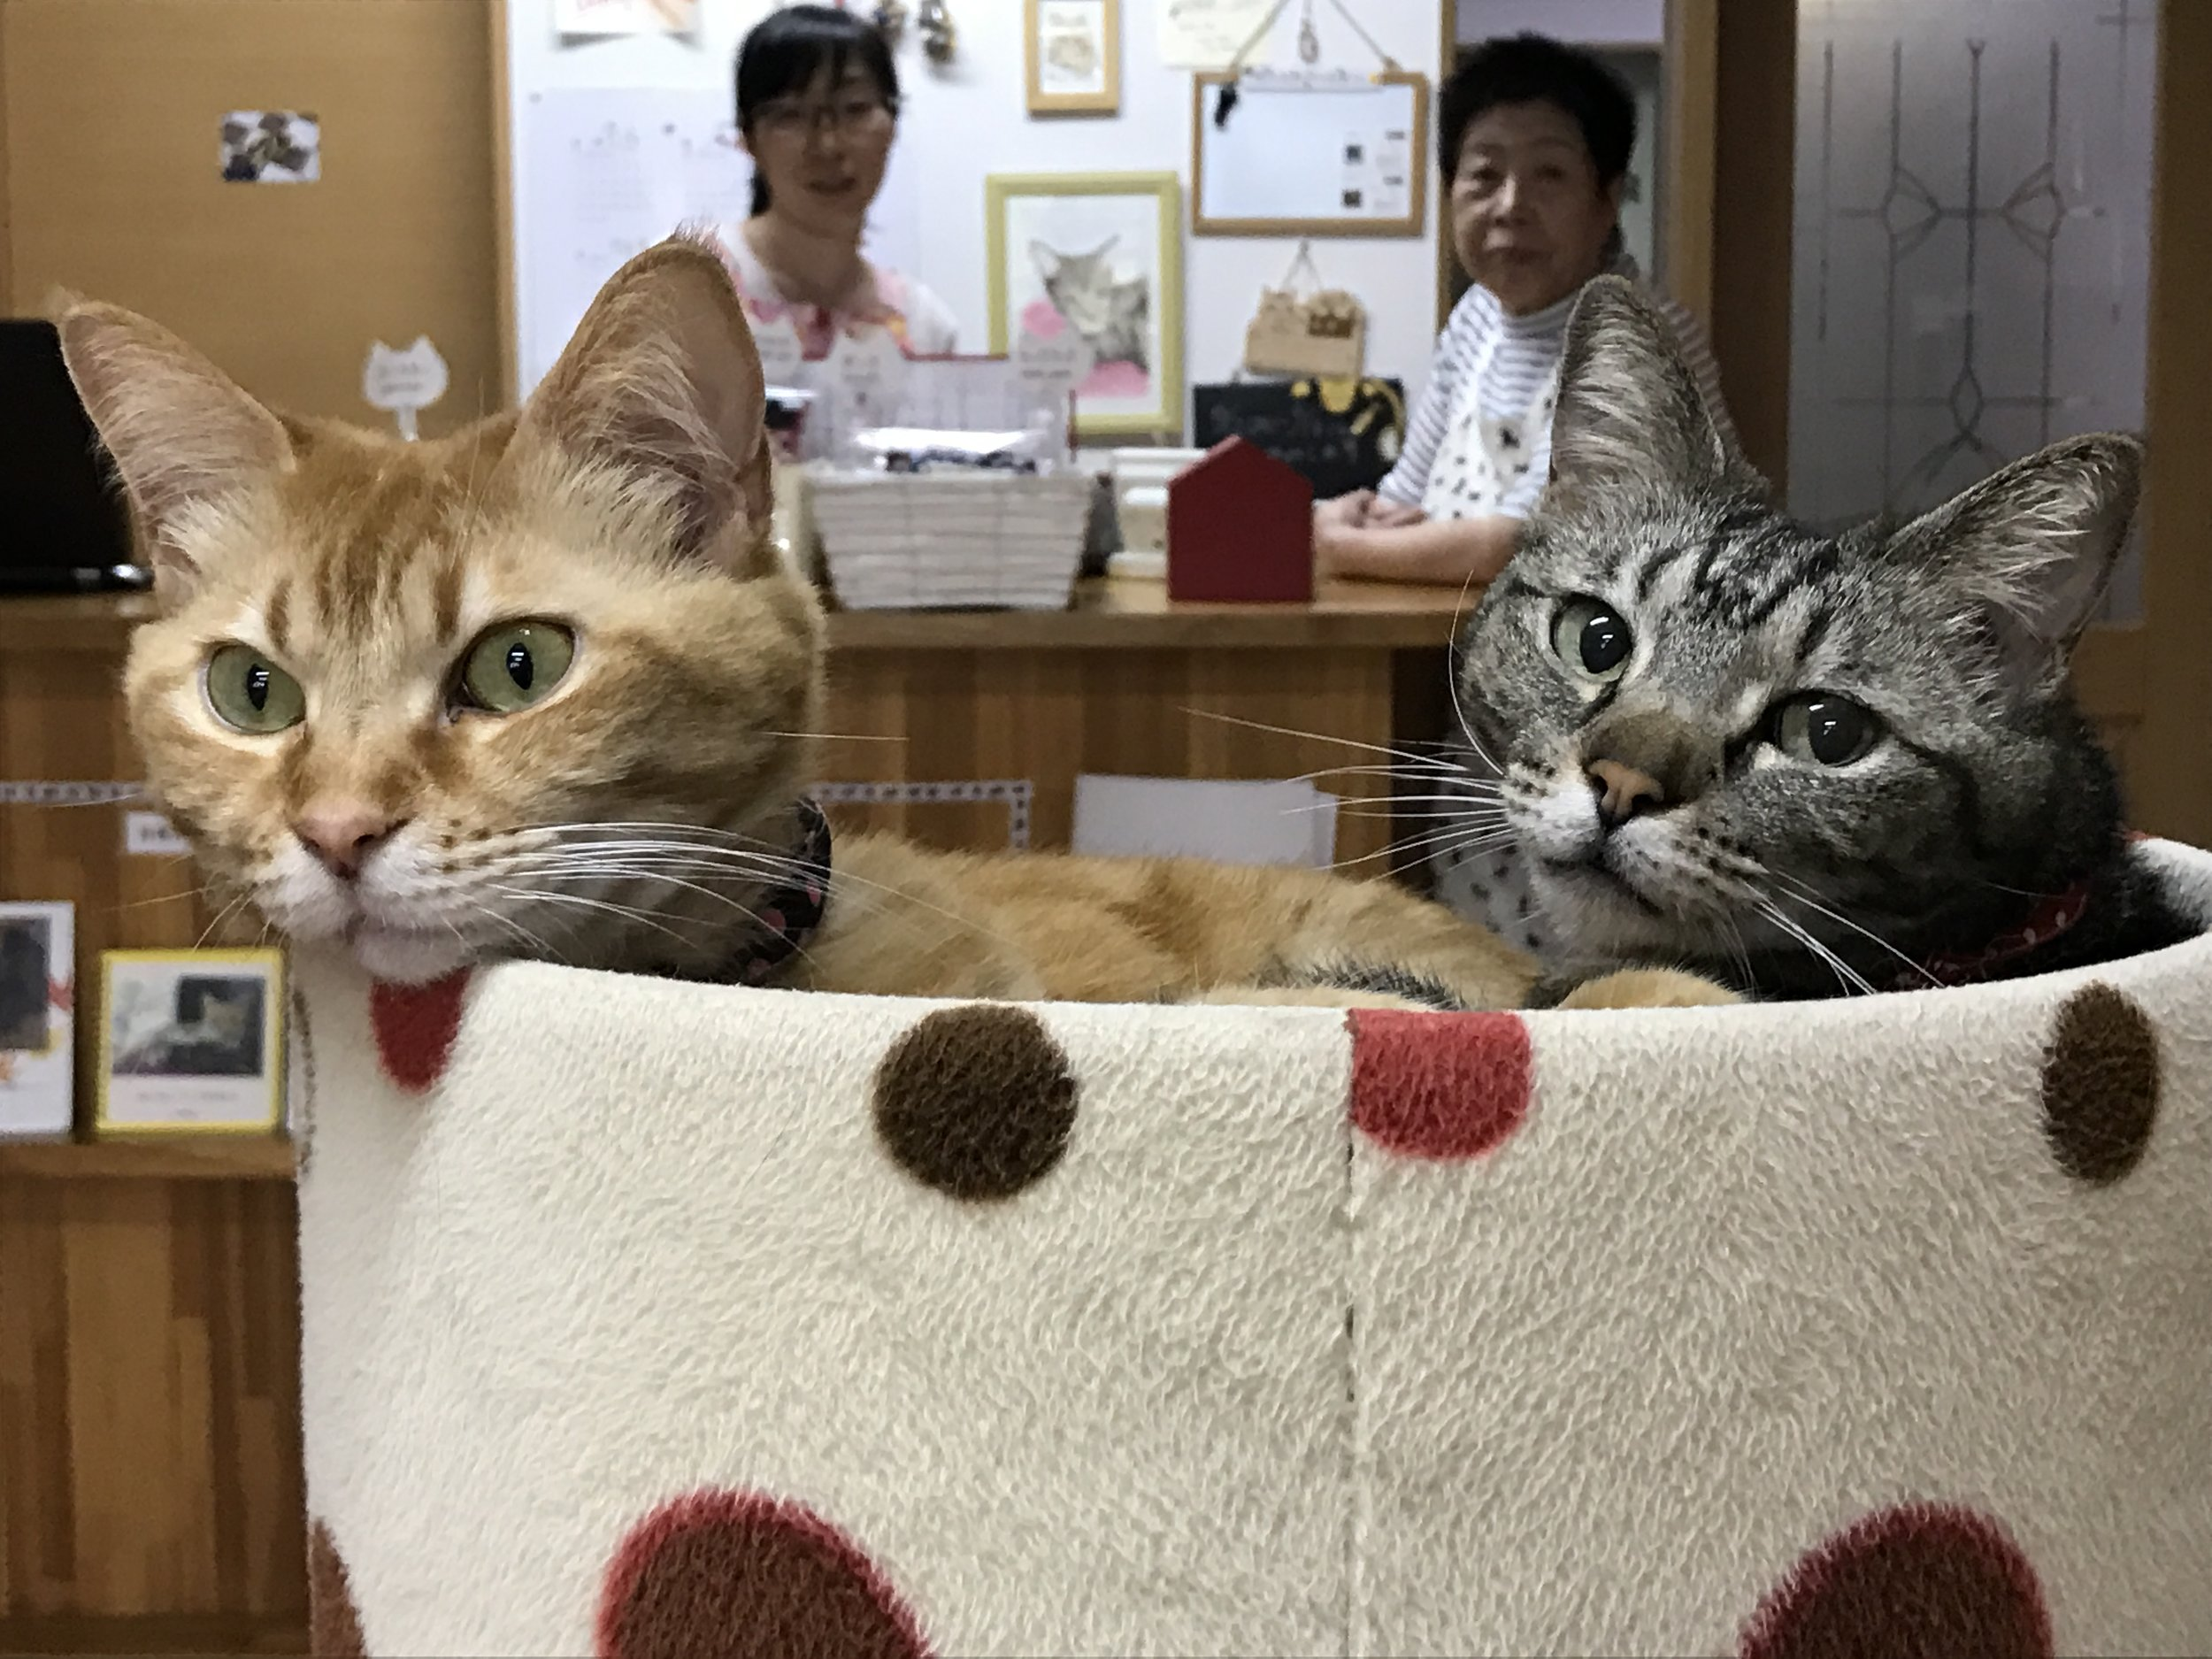 All of the 13 cats at Cat Cafe Nekokaigi are street rescues